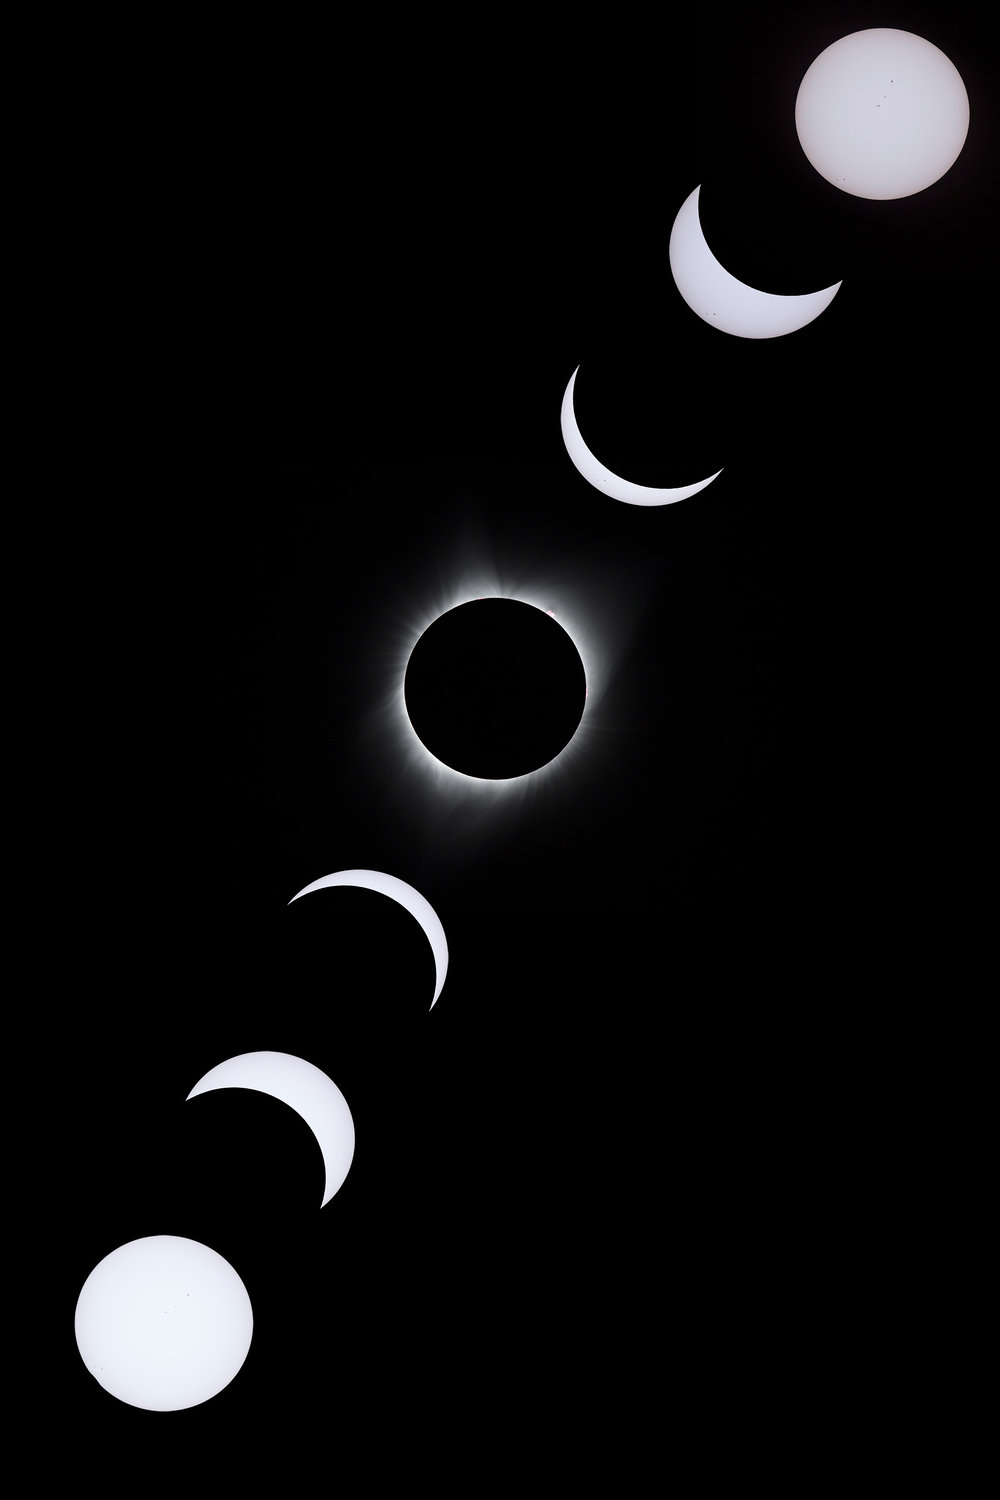 eclipse sequence_2.jpg